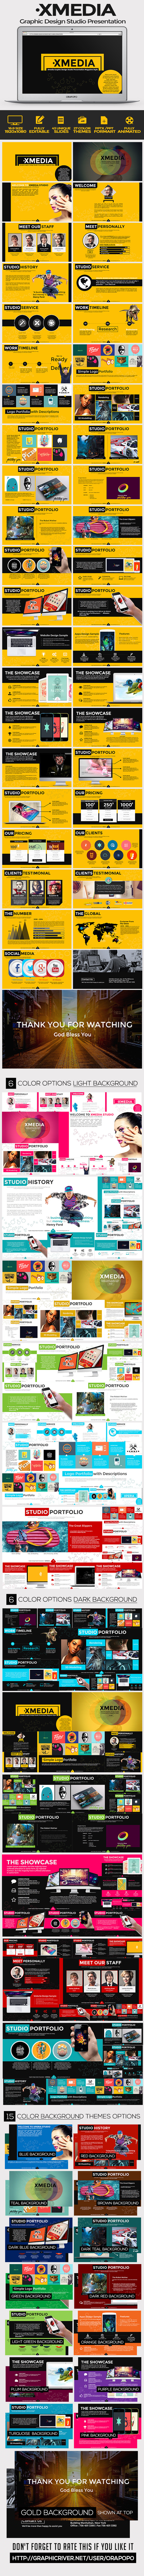 GraphicRiver Xmedia Graphic Design Studio Presentation 9068480